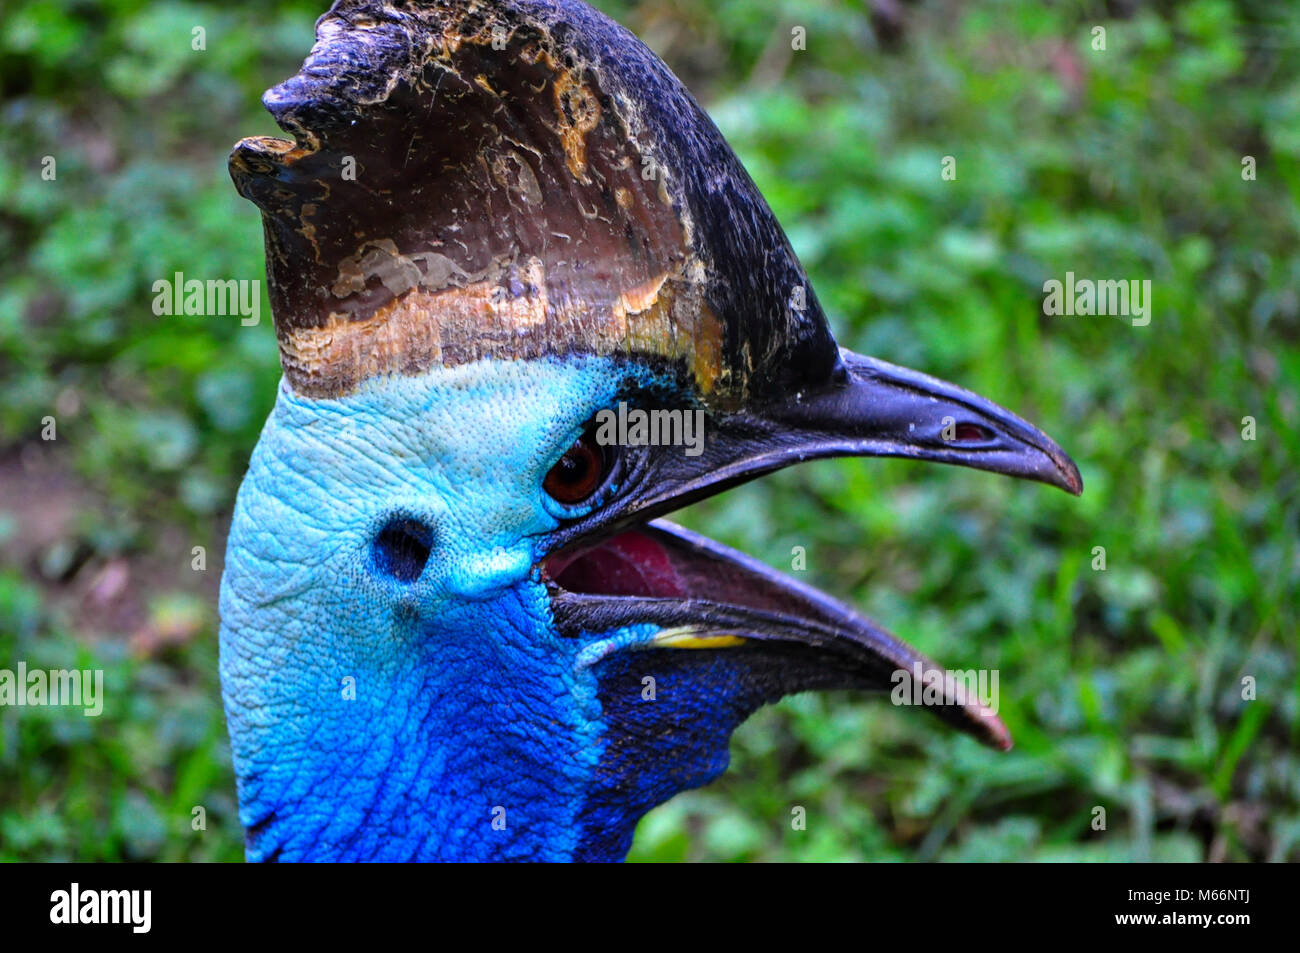 Non flying Cassowary Bird at National Zoo in Washington DC - Stock Image